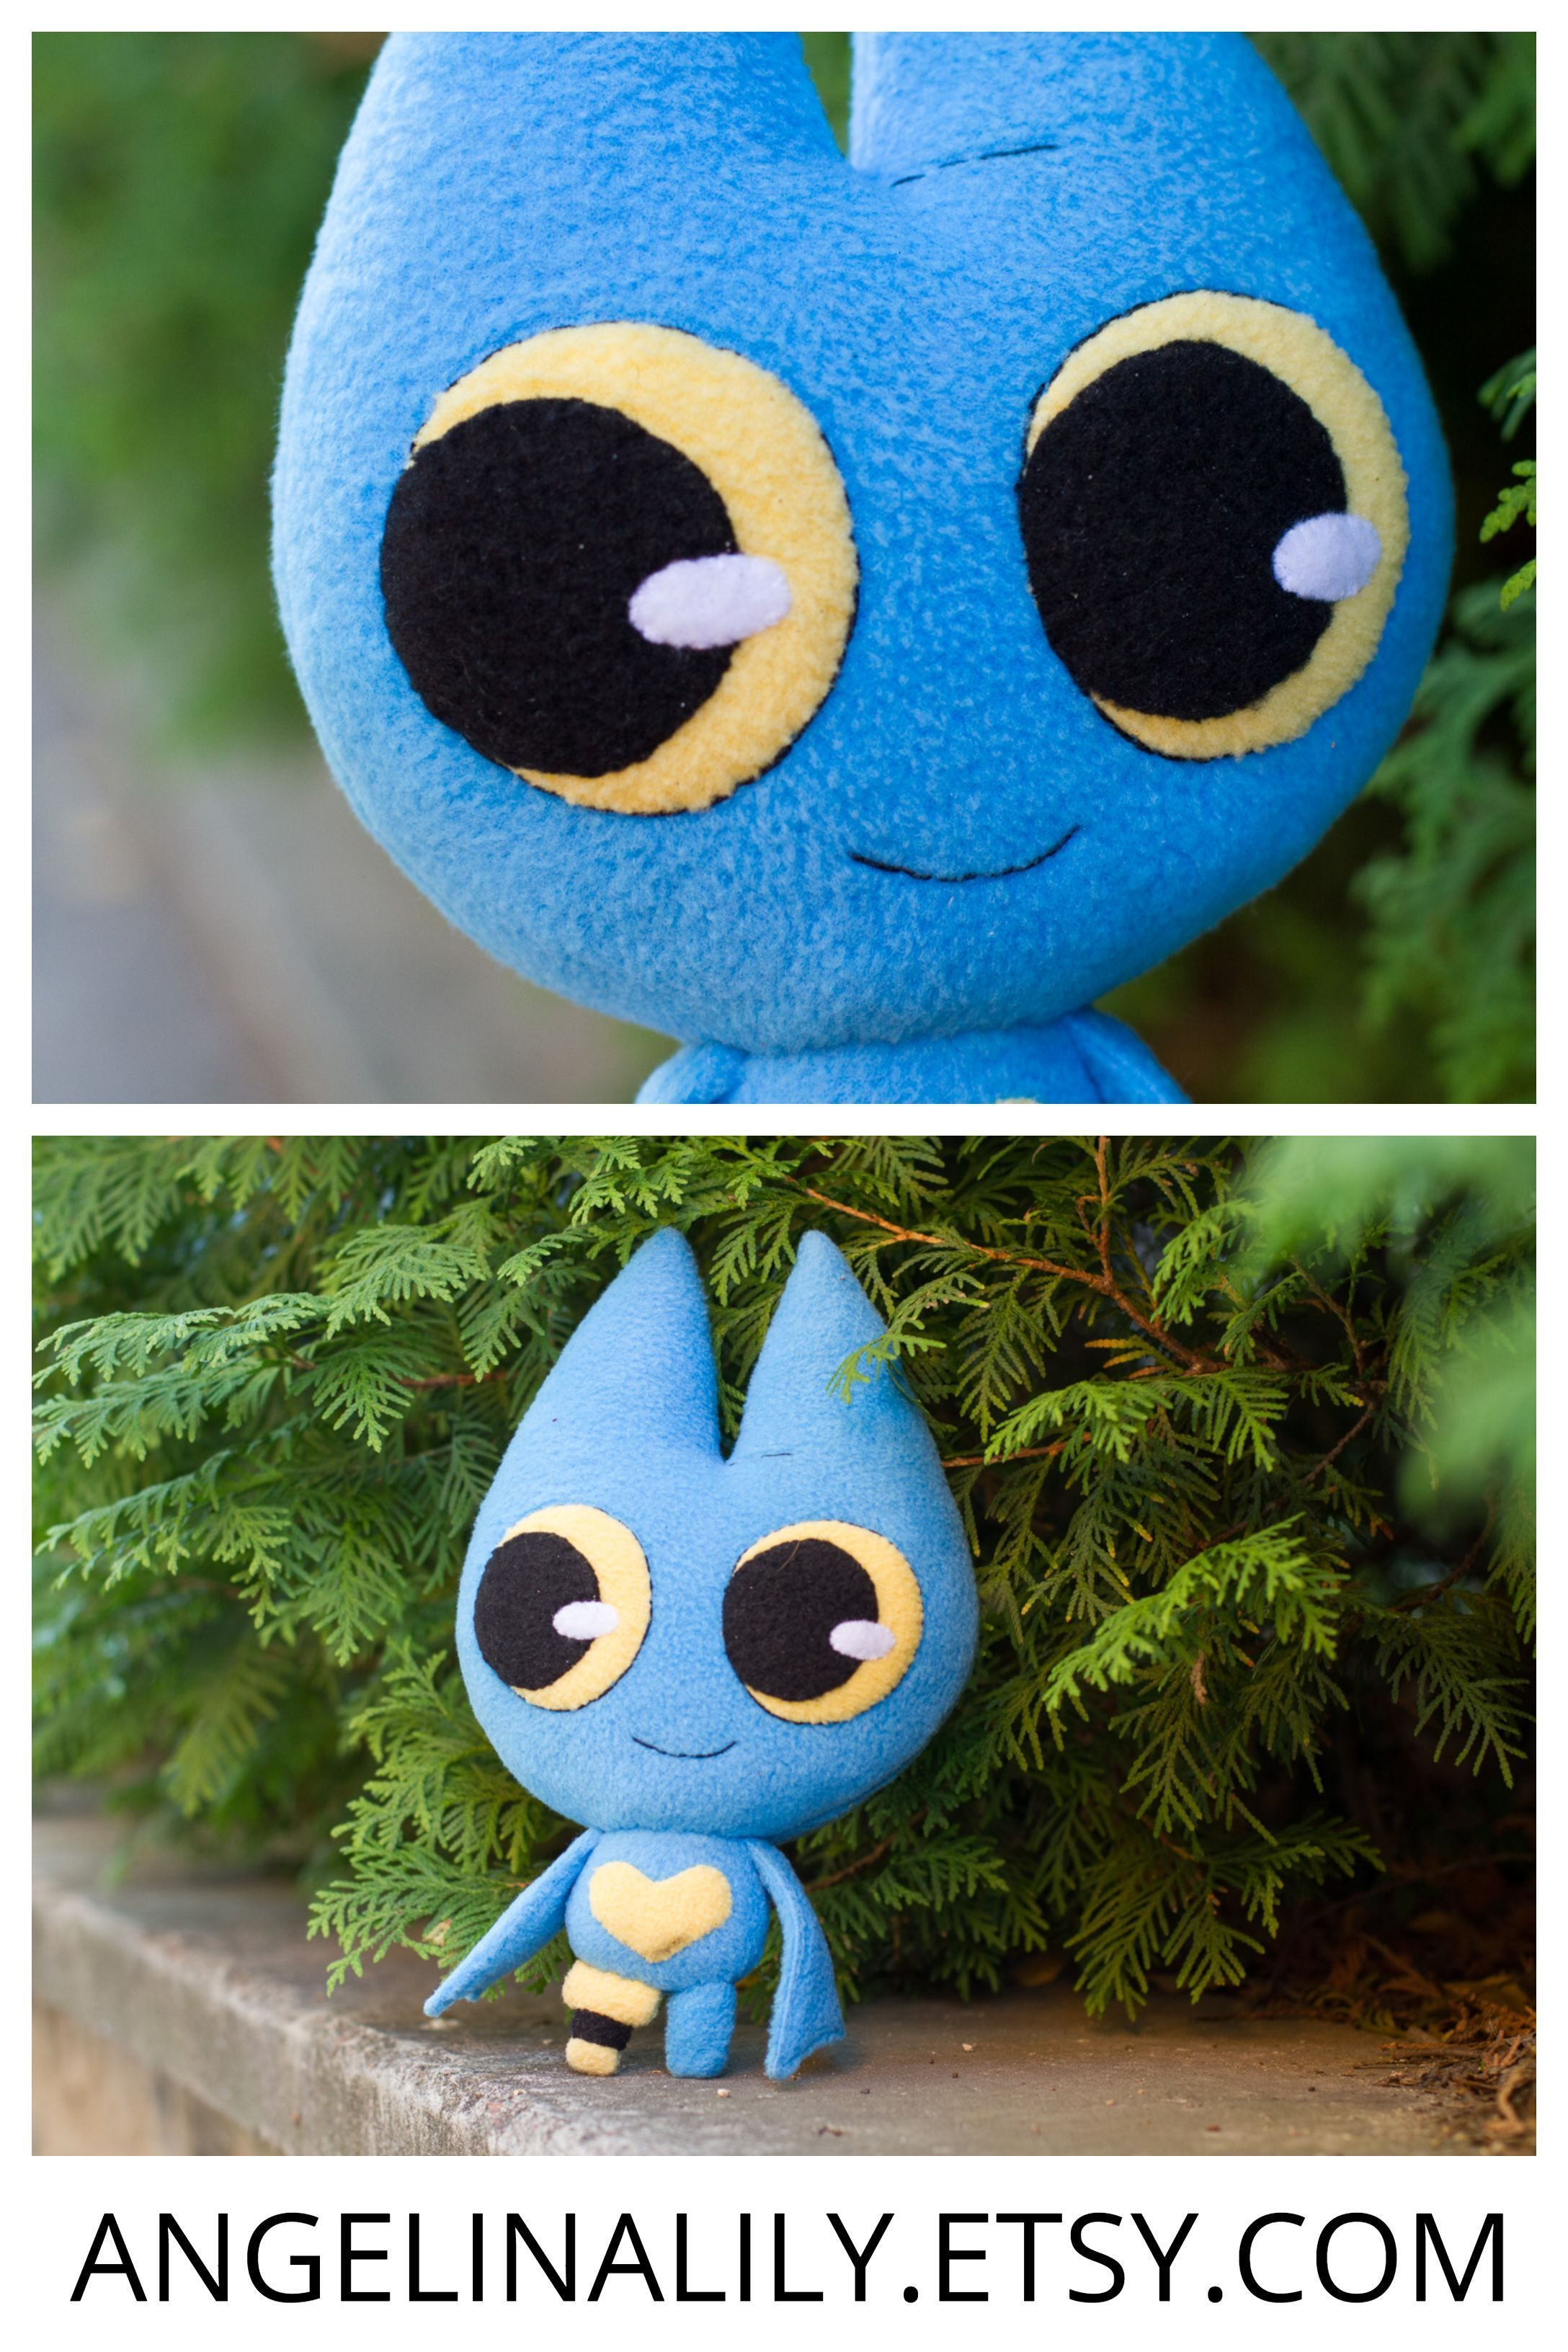 Adorabat Plush Mao Mao Heroes Of Pure Heart Toys Inspired Etsy In 2020 Handmade Soft Toys Dolls Handmade Handmade Plush We made this adorabat plush together with my mom. pinterest